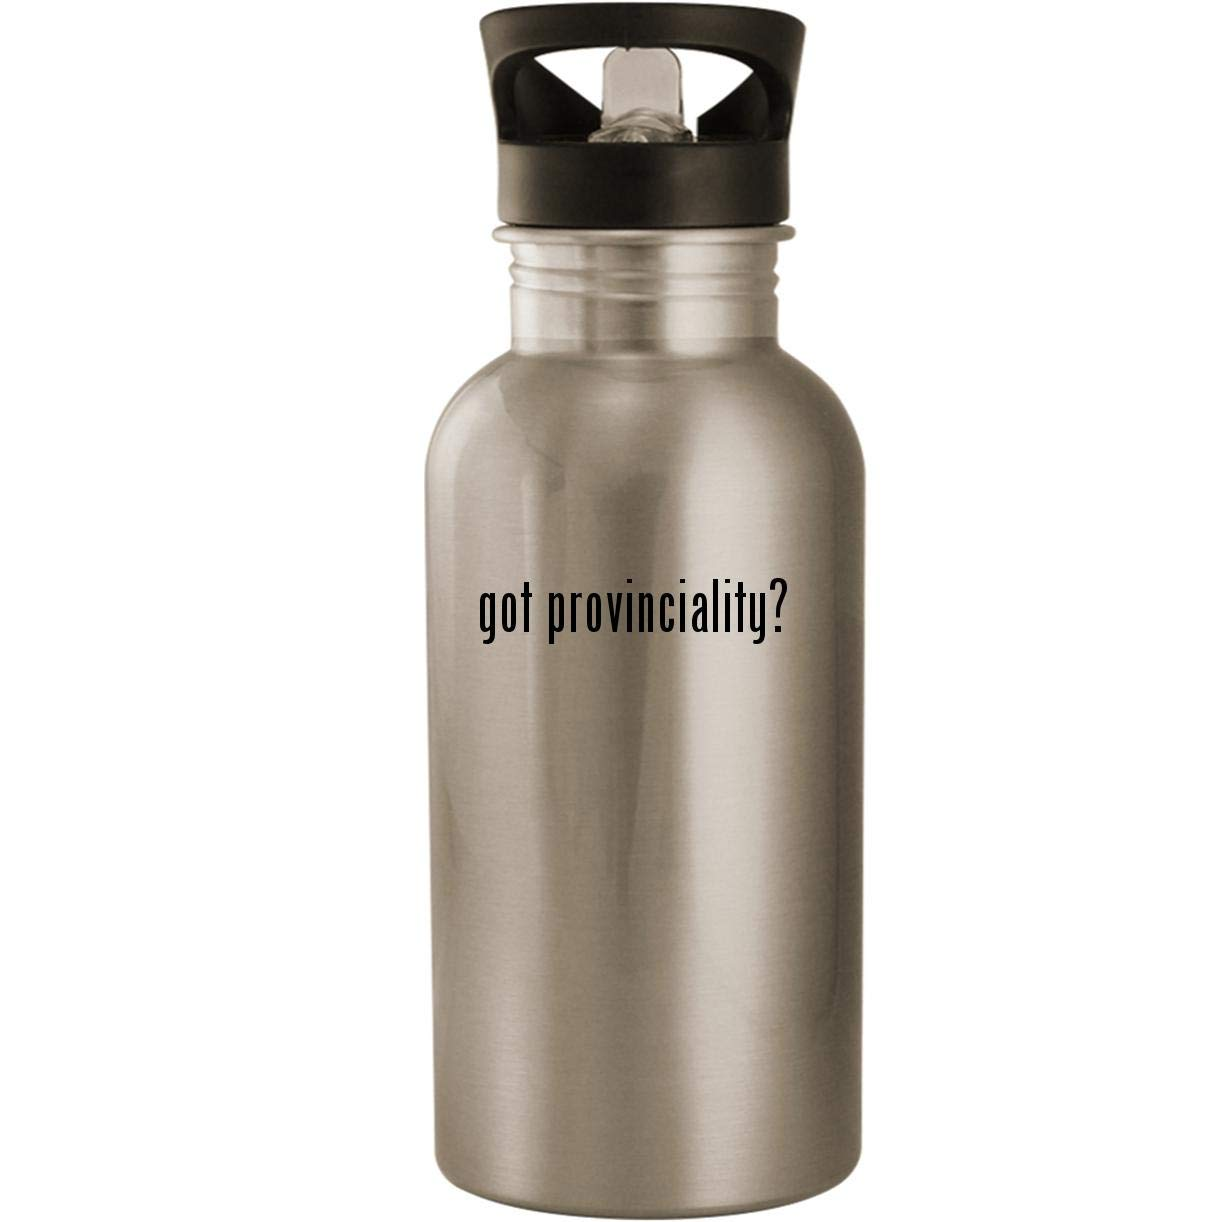 got provinciality? - Stainless Steel 20oz Road Ready Water Bottle, Silver